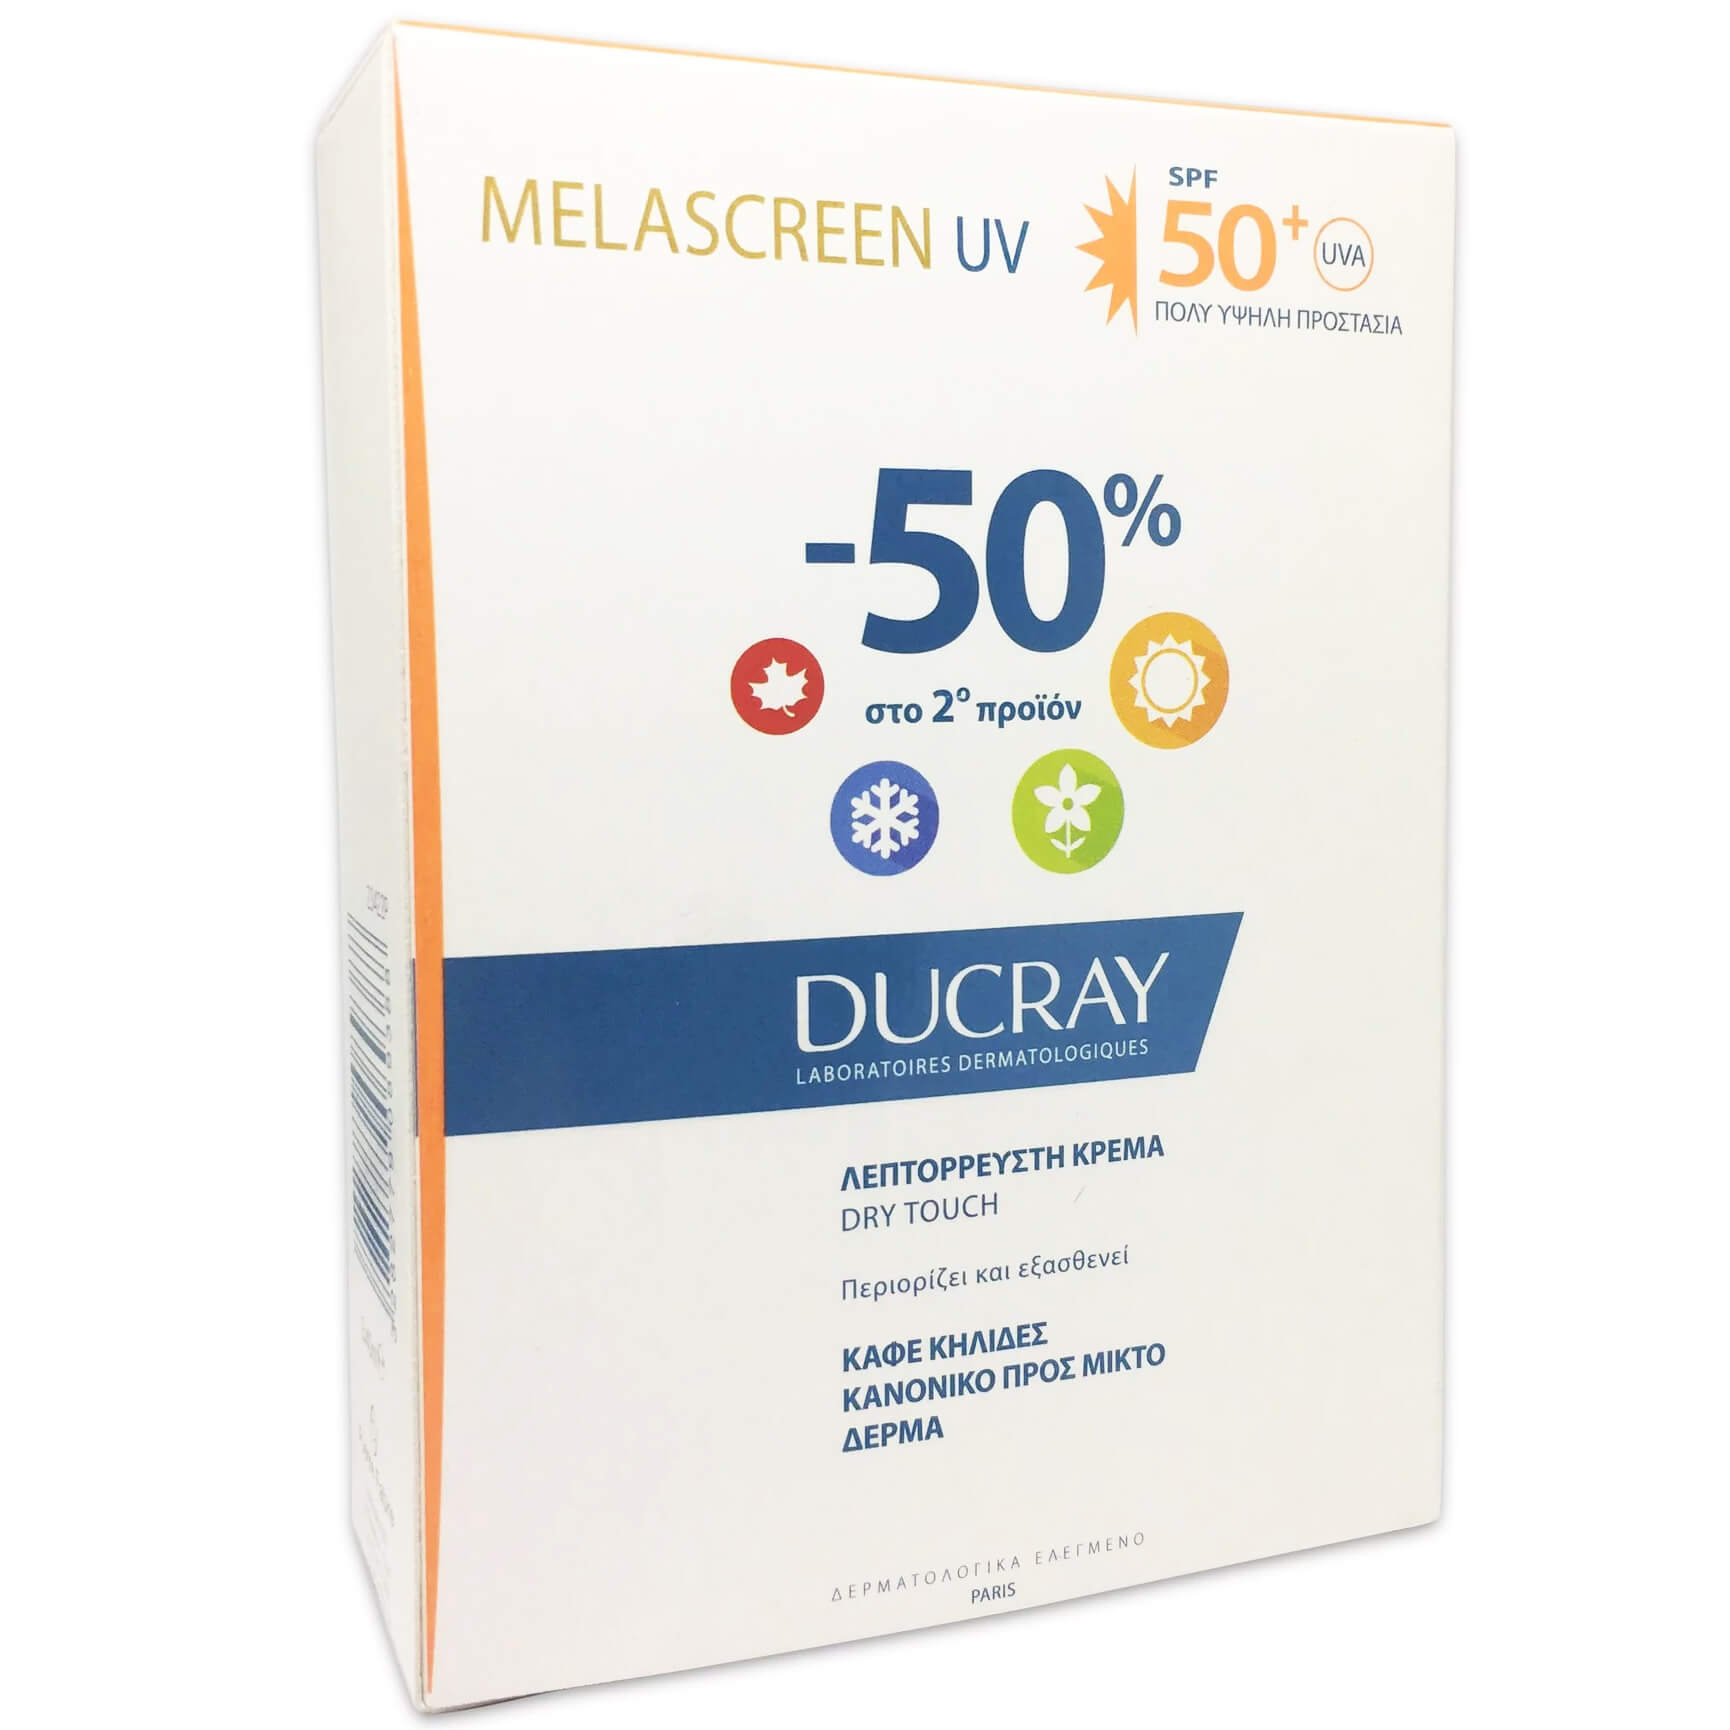 Ducray Duo Melascreen UV Creme Legere Spf50+ Dry Touch Λεπτόρρευστη Αντηλιακή Κρέμα Πολύ Υψηλής Προστασίας 2x40ml σε Ειδική Τιμή